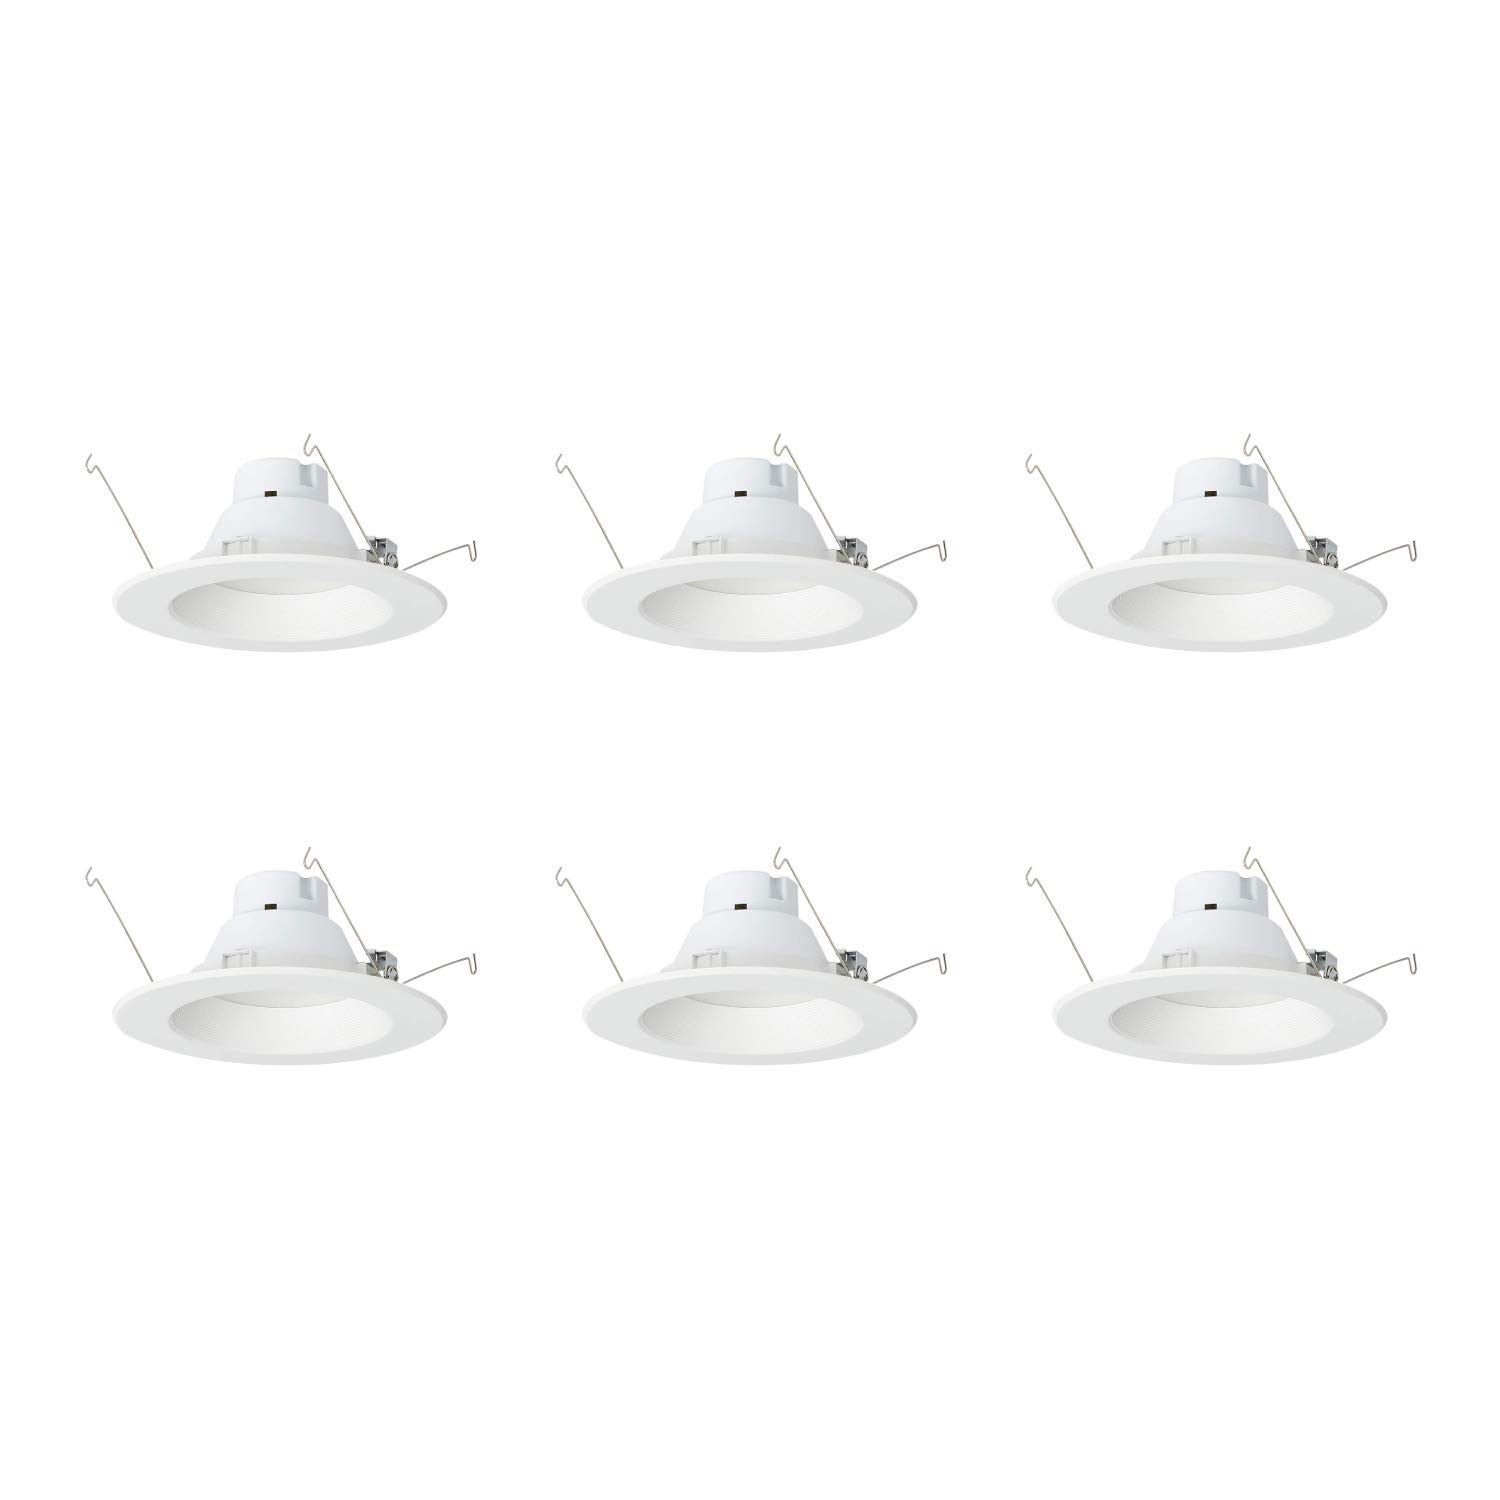 AmazonCommercial 120 Watt Equivalent, 5/6-Inch Recessed Downlight, Dimmable, CEC Compliant, Energy Star, Round LED Light Bulb | Warm White, 6-Pack by AmazonCommercial